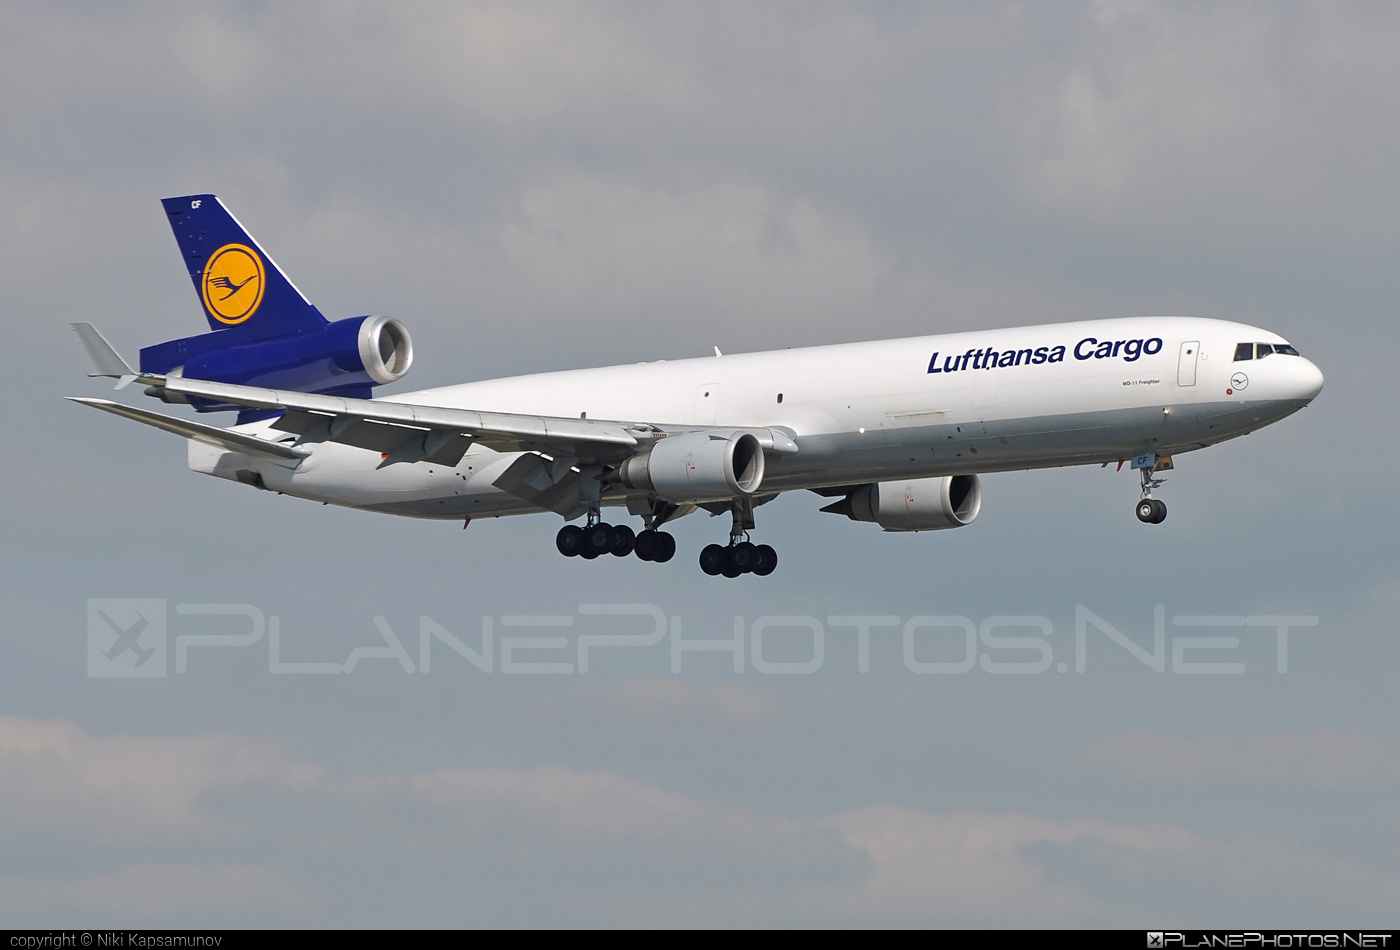 McDonnell Douglas MD-11F - D-ALCF operated by Lufthansa Cargo #lufthansa #lufthansacargo #mcdonnelldouglas #mcdonnelldouglas11 #mcdonnelldouglas11f #mcdonnelldouglasmd11 #mcdonnelldouglasmd11f #md11 #md11f